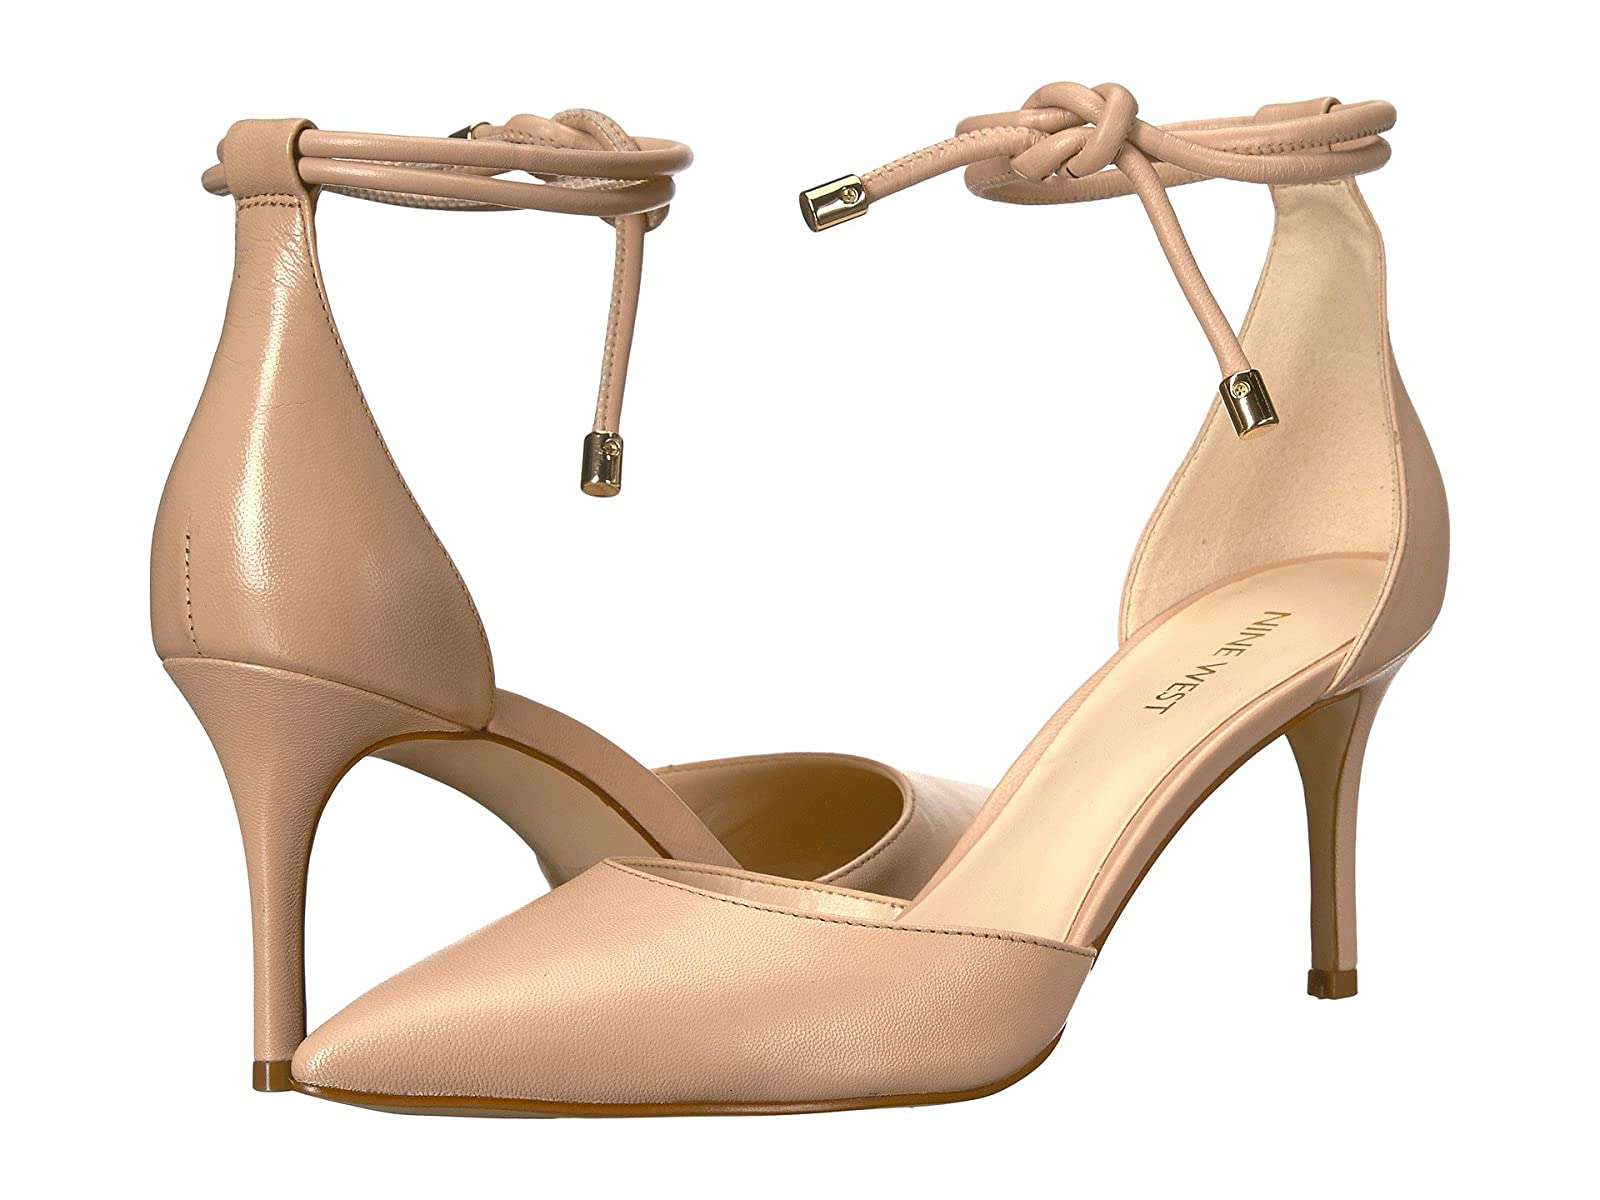 Nine West MillenioCheap and distinctive eye-catching shoes